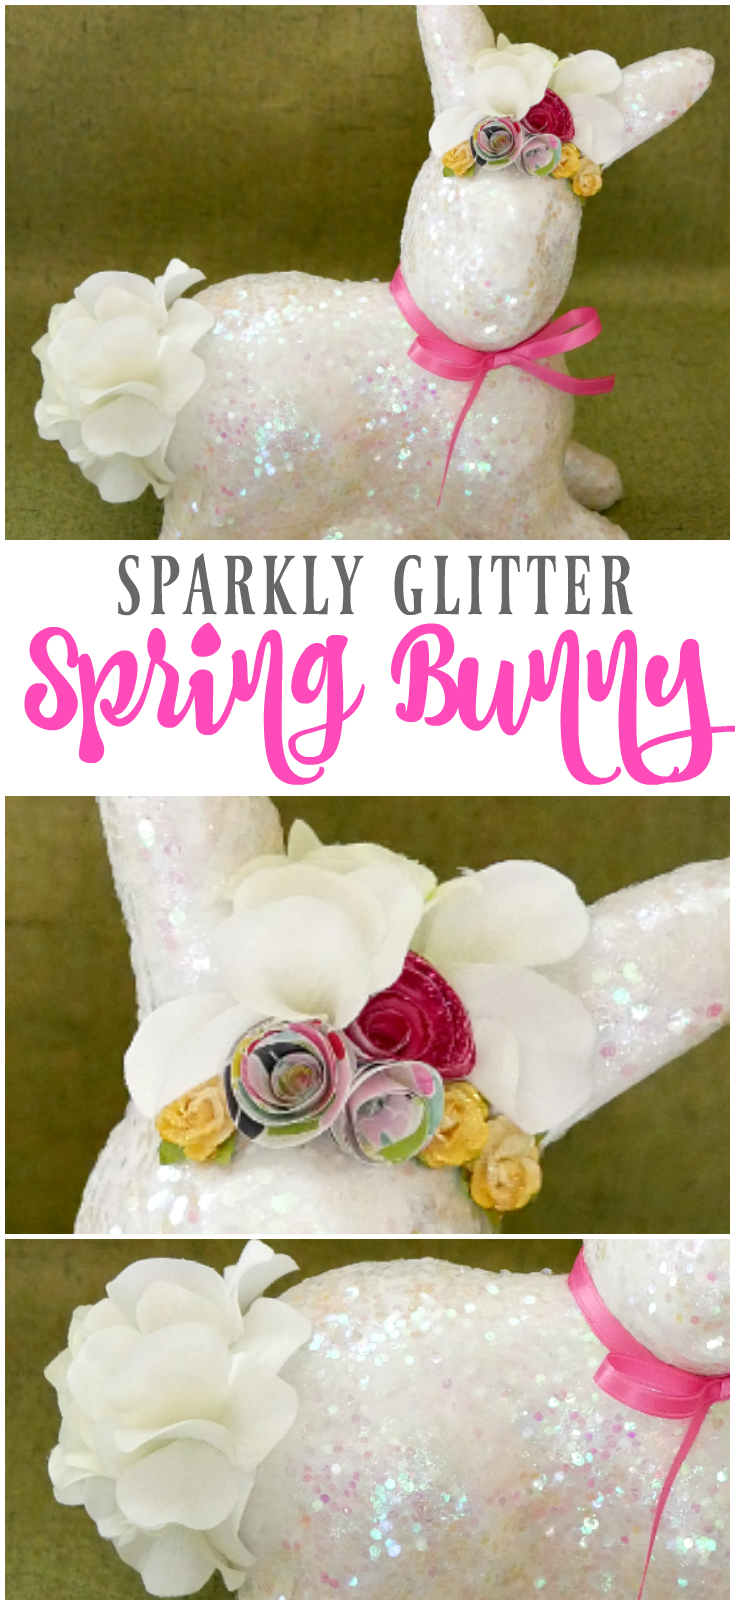 Sparkly Glitter Spring Bunny Craft Tutorial Diy Easter Decor